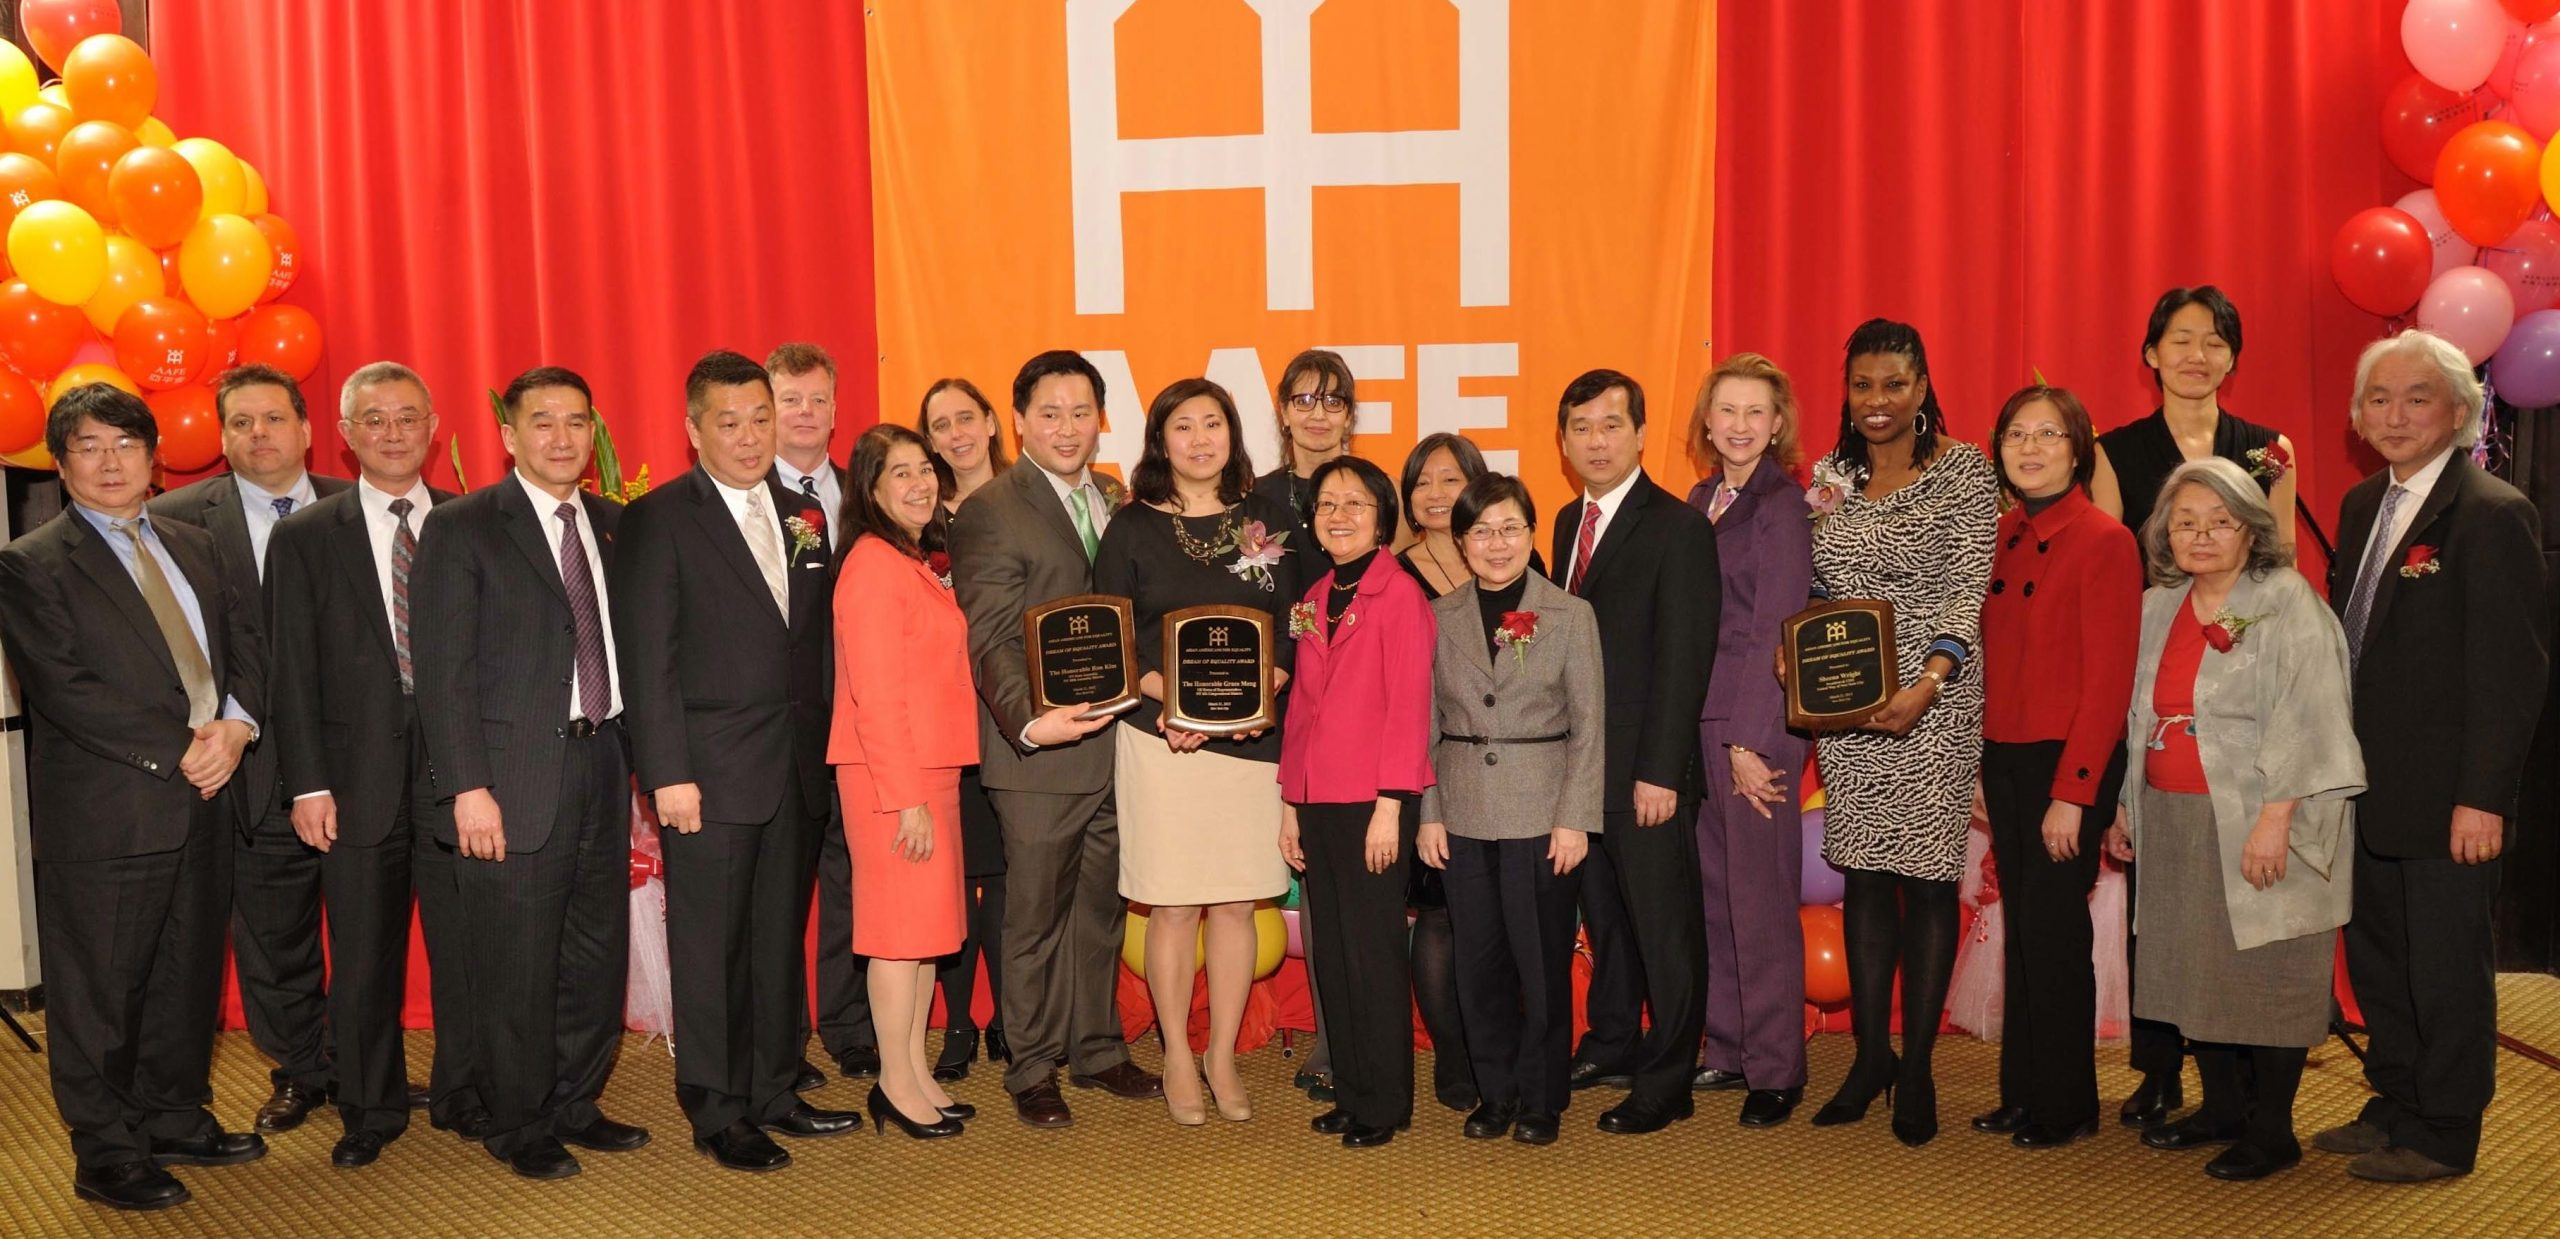 Photos: AAFE's 2013 Lunar New Year Banquet